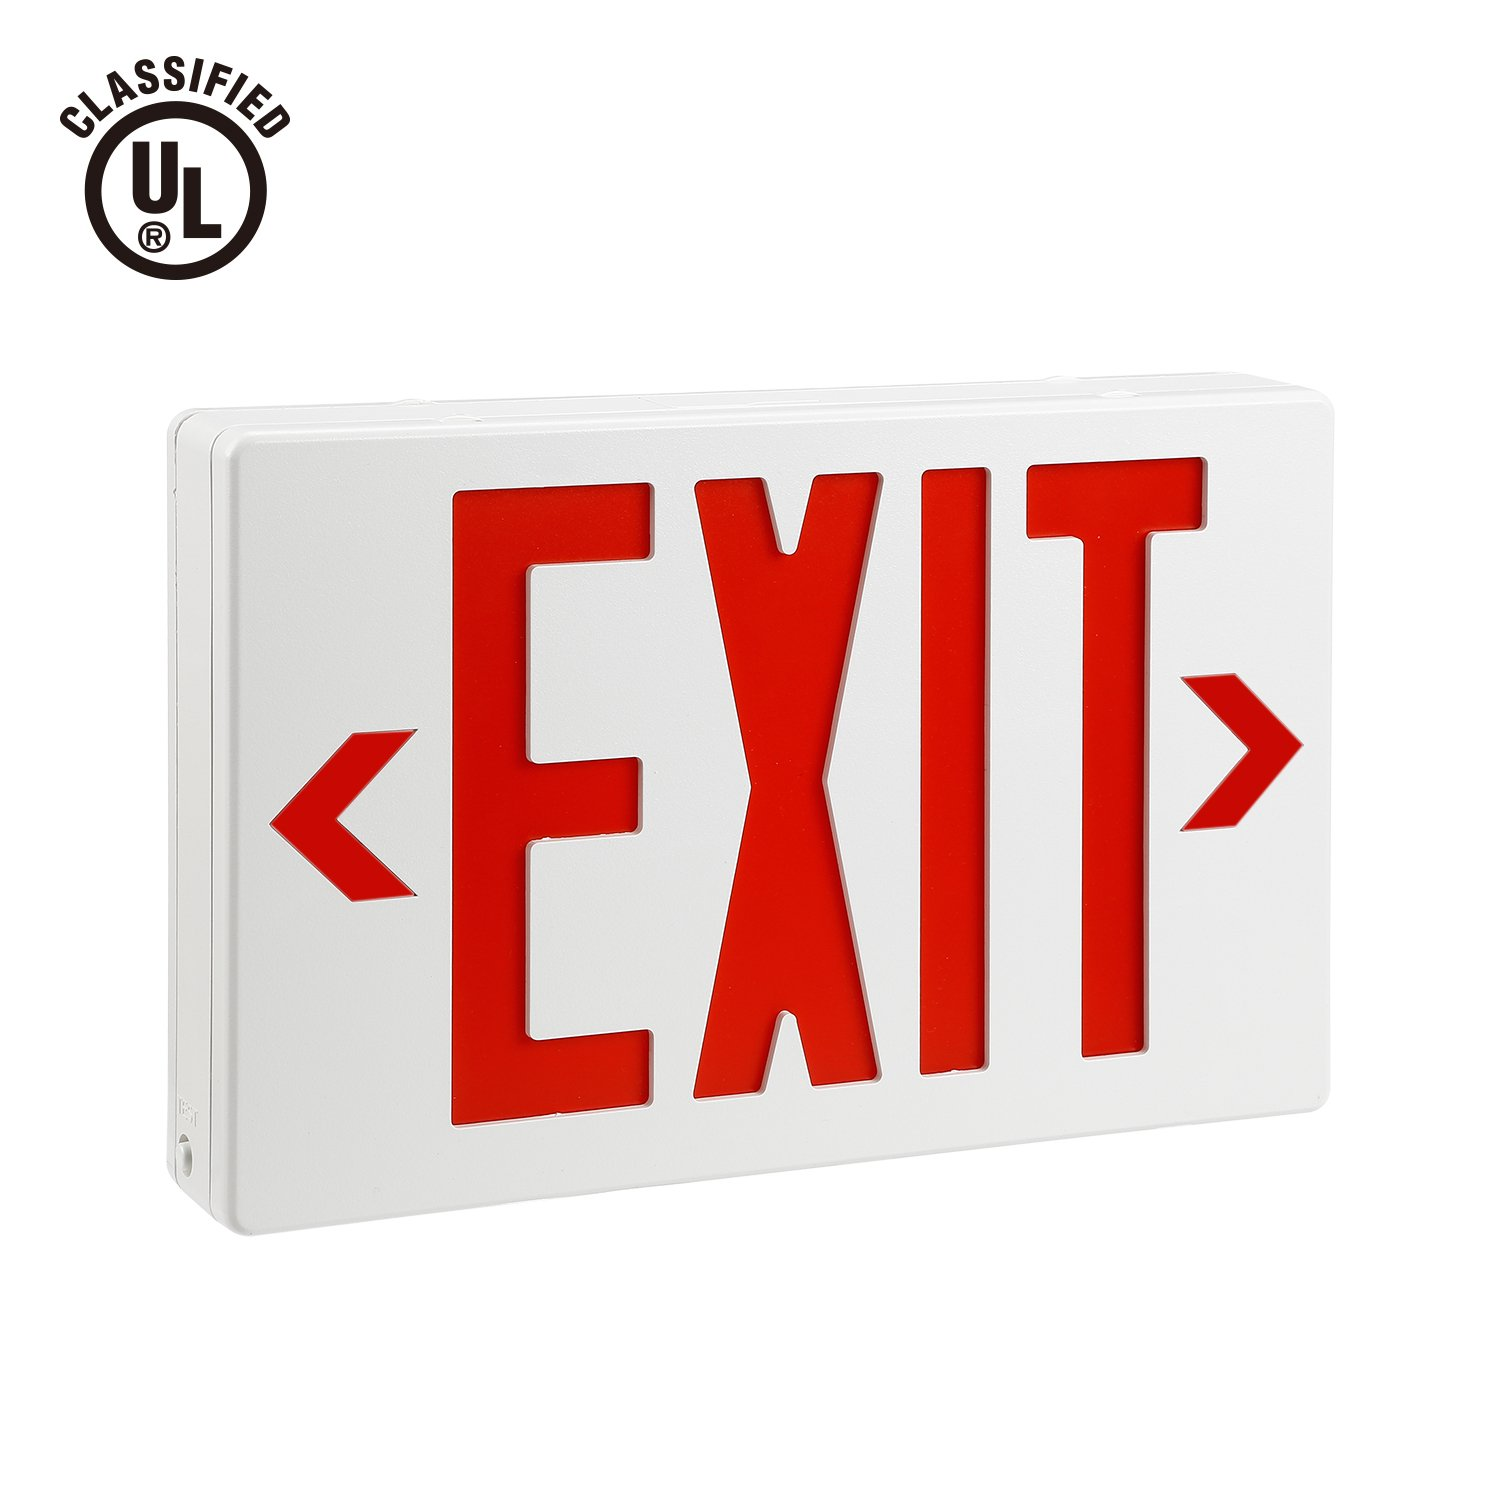 AC 120V/277V Single/Double Face LED Exit Sign Red Letter UL-Classified with Battery Backup Ceiling/Side/Back Mounting LED Indicator Exit Light for Residential and Commercial - EL04